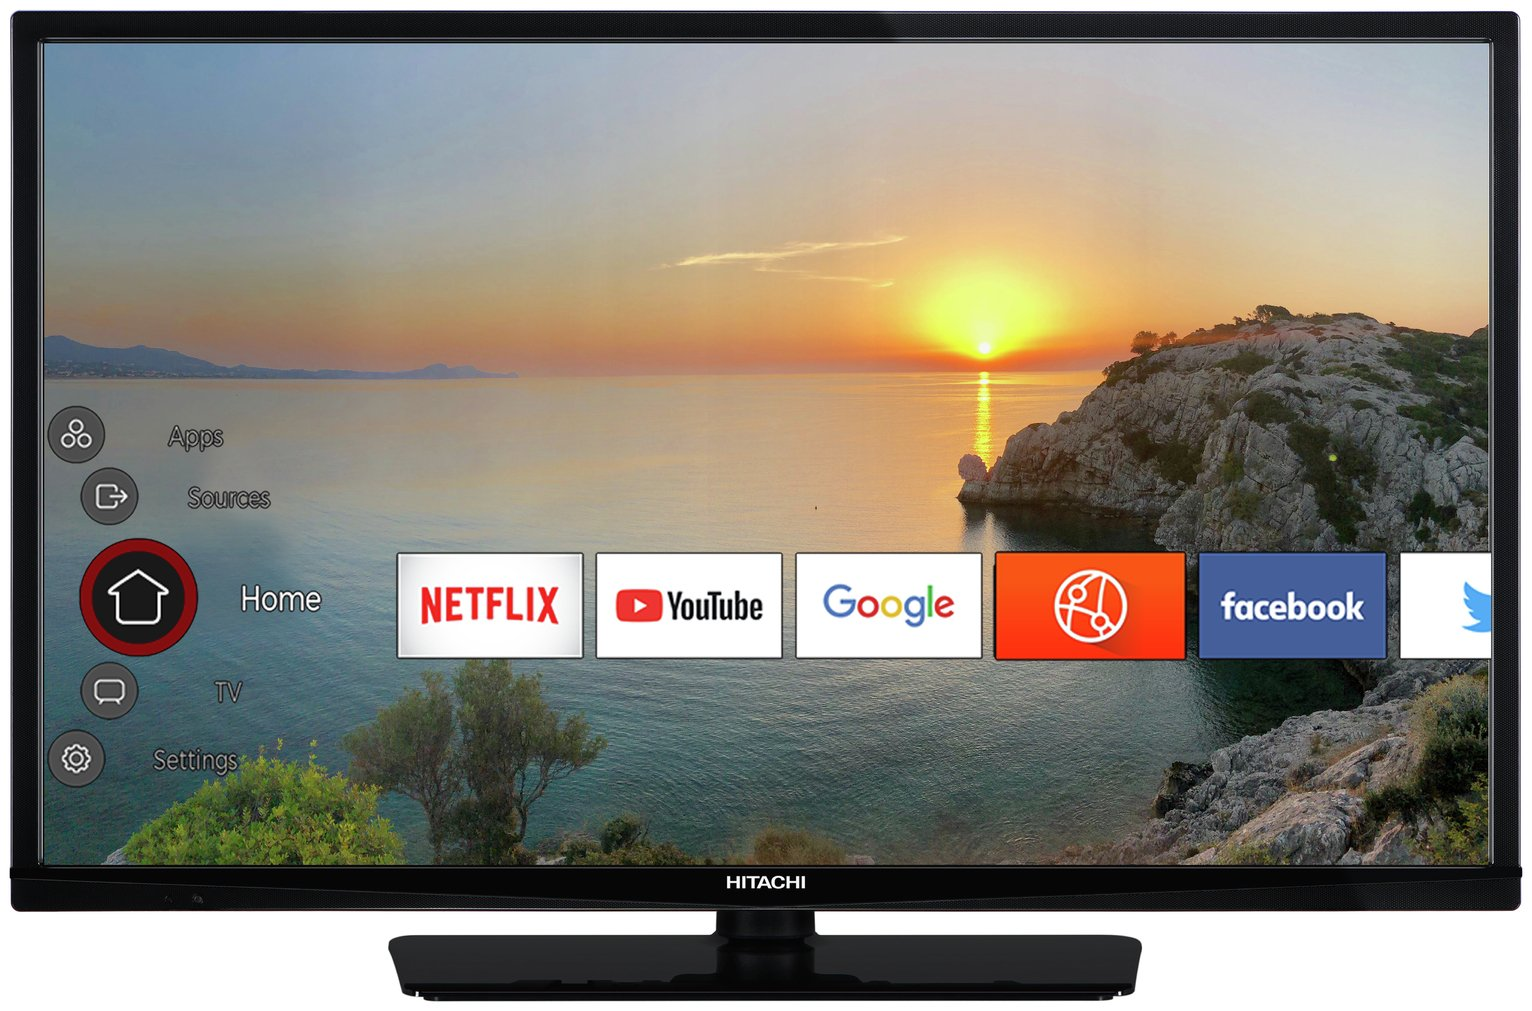 Hitachi 43 Inch Smart Full HD TV from Hitachi